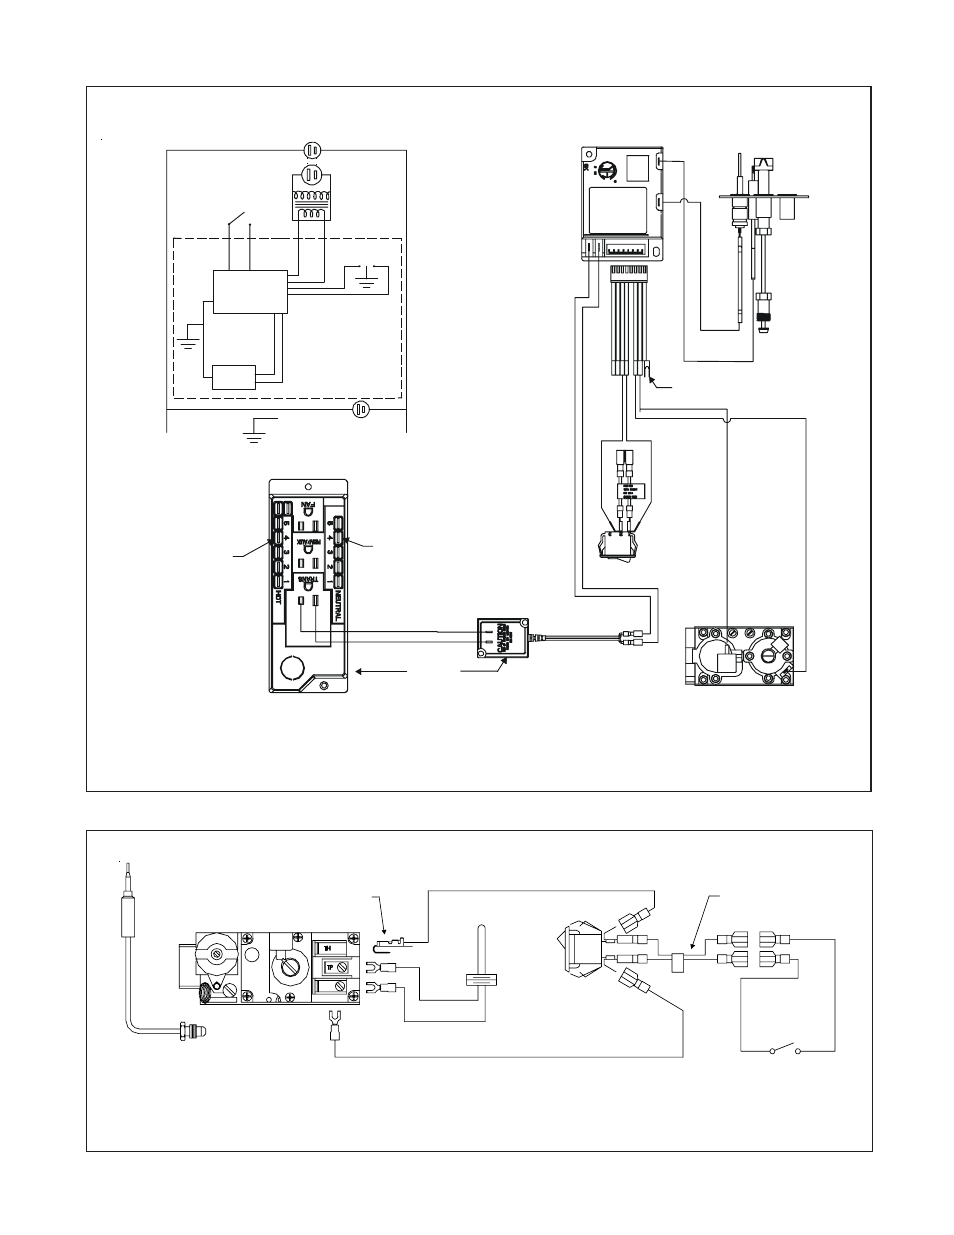 Plans Free Download Wiring Diagrams Pictures Wiring Diagrams